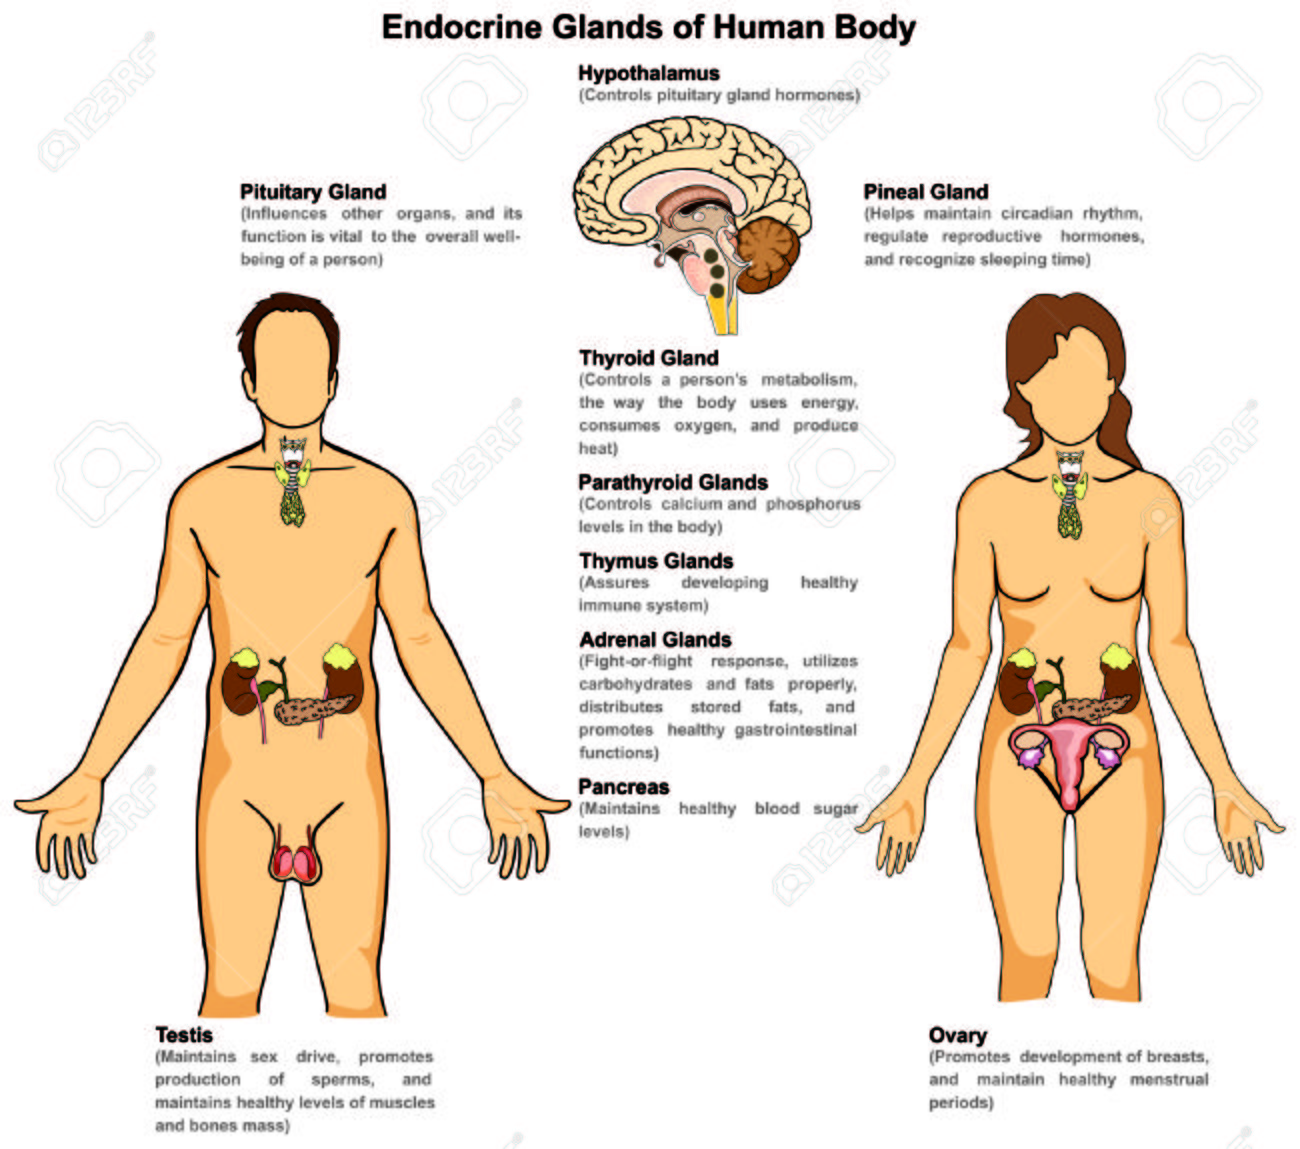 Male the endocrine glands diagram online schematic diagram endocrine glands of human body for male and female royalty free rh 123rf com exocrine glands diagram endocrine system glands ccuart Image collections